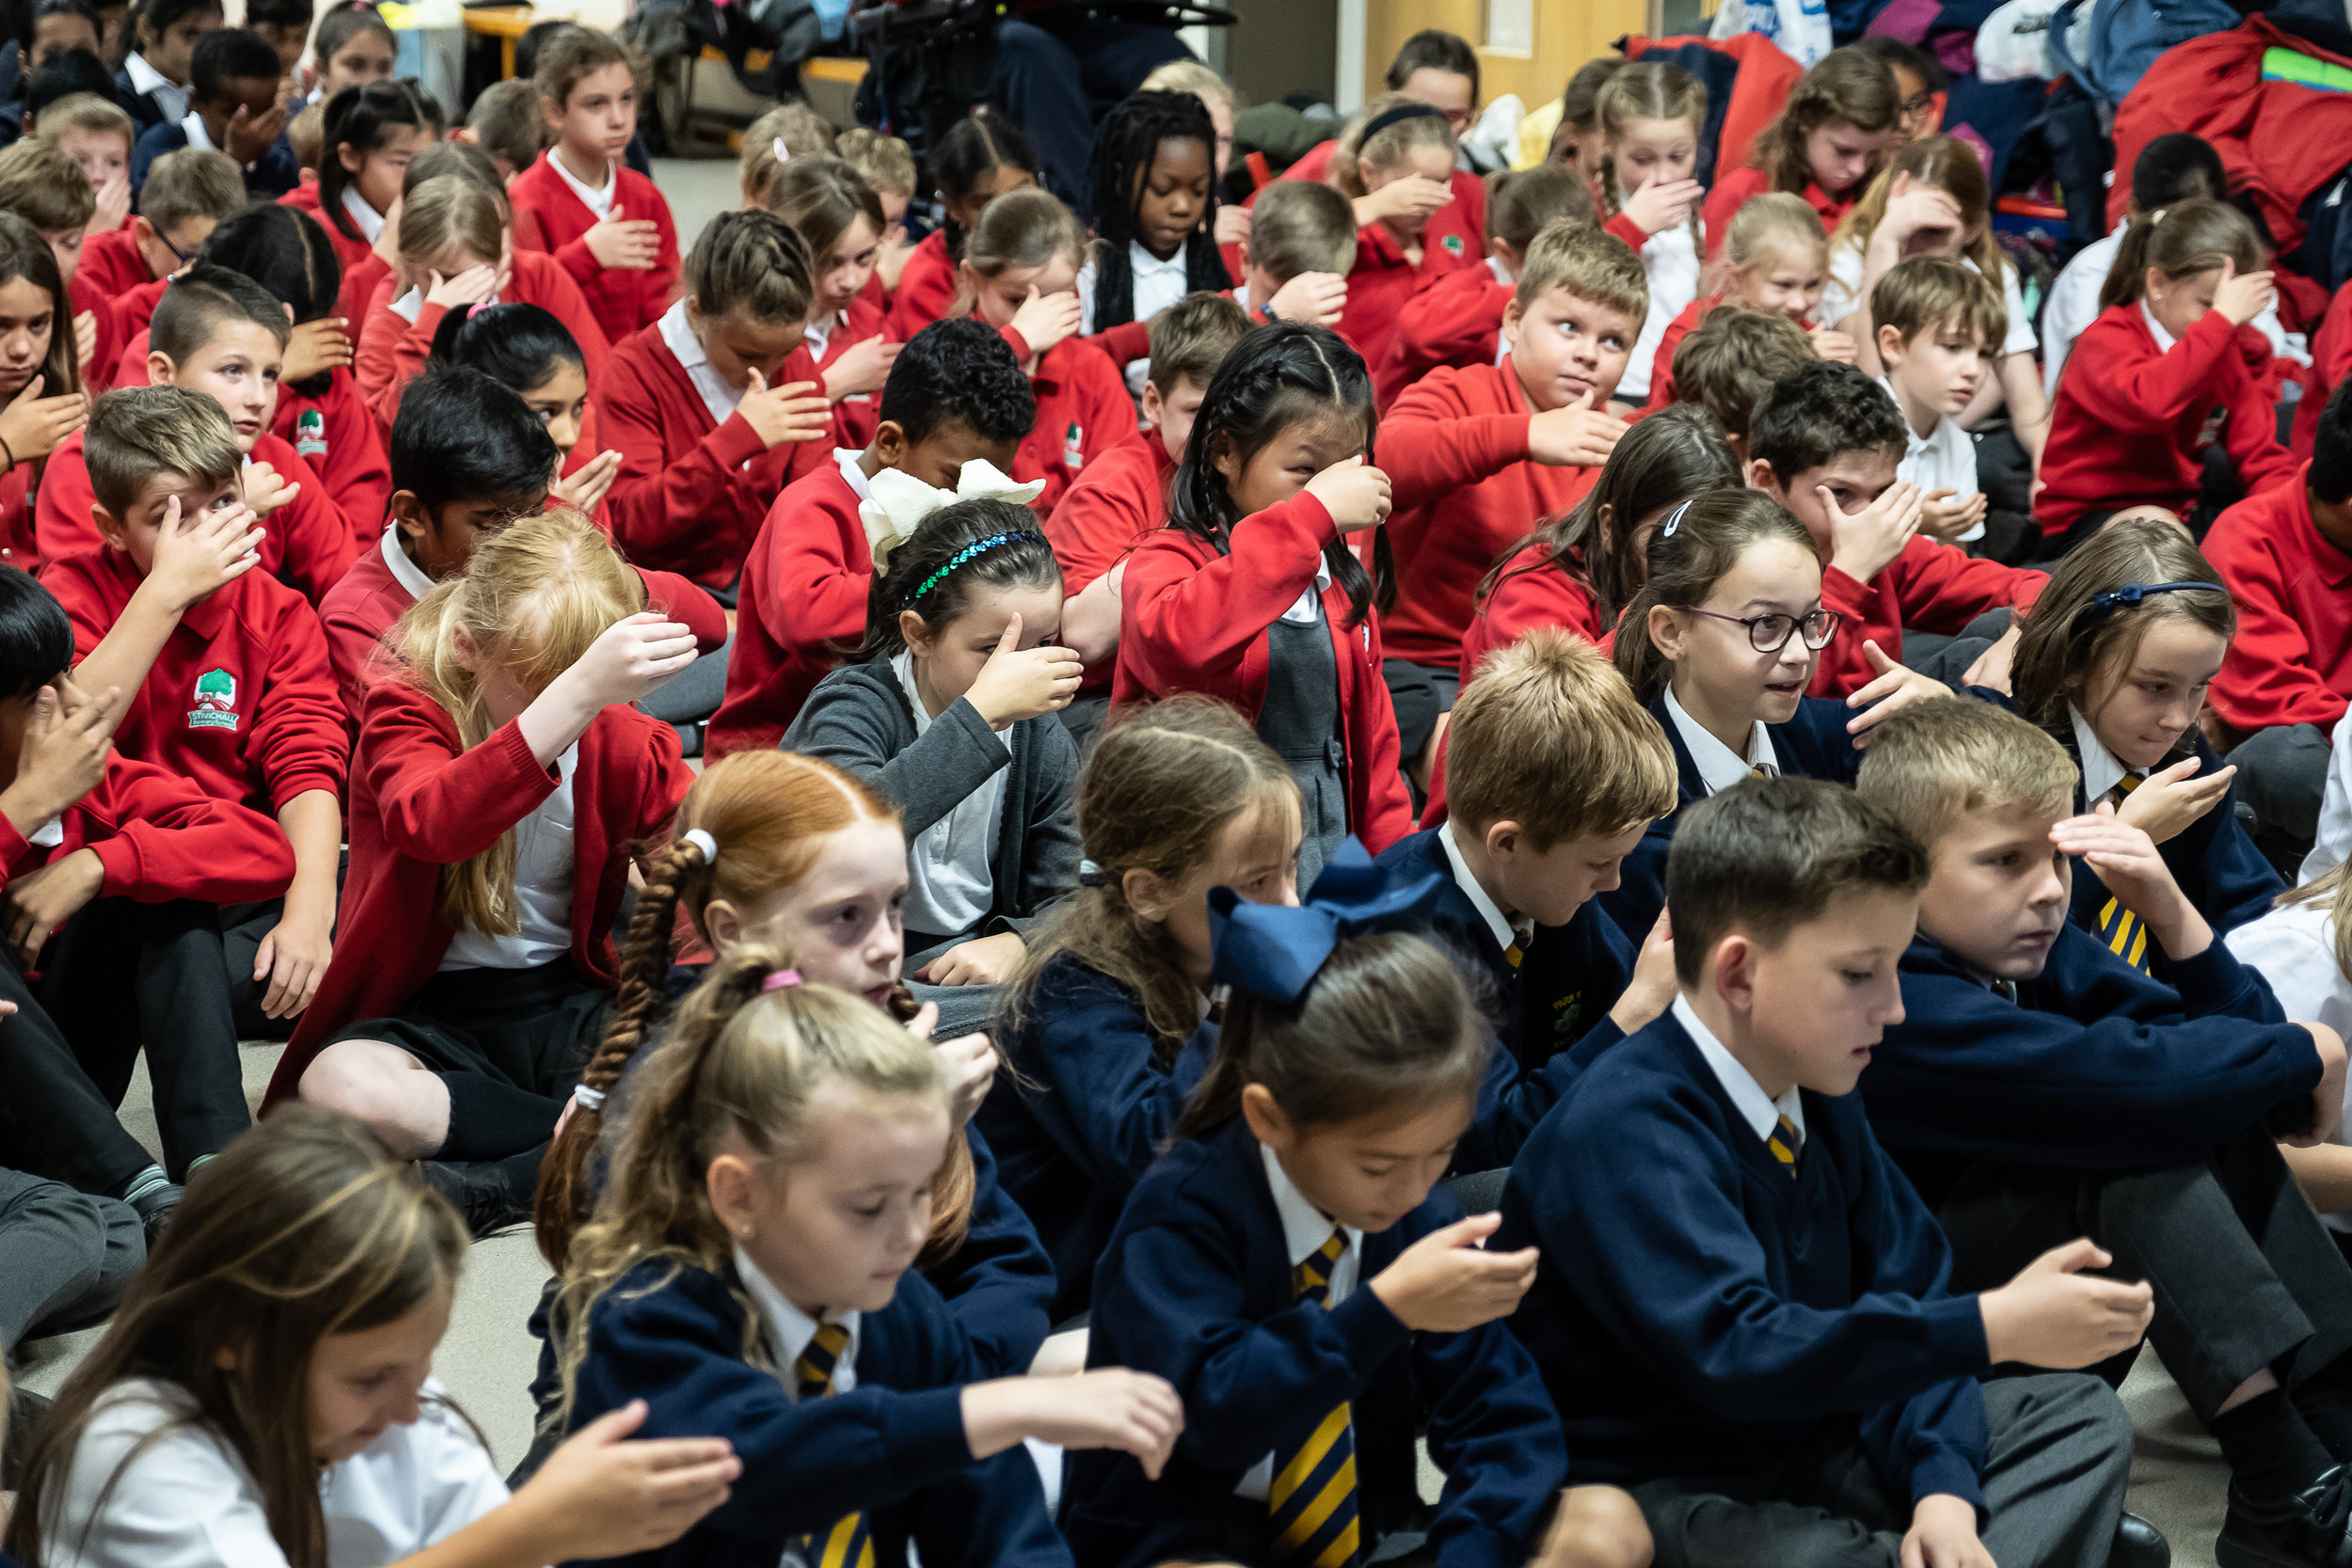 180 children from five Coventry primary schools participate in a 'Getting to Noh' workshop on 21 September 2018 to learn about some of key aspects of noh and the story of  'Between the Stones'.  Here the children are learning about the meaning of the  'shiori'  symbolising sadness. Photography by Clive Barda